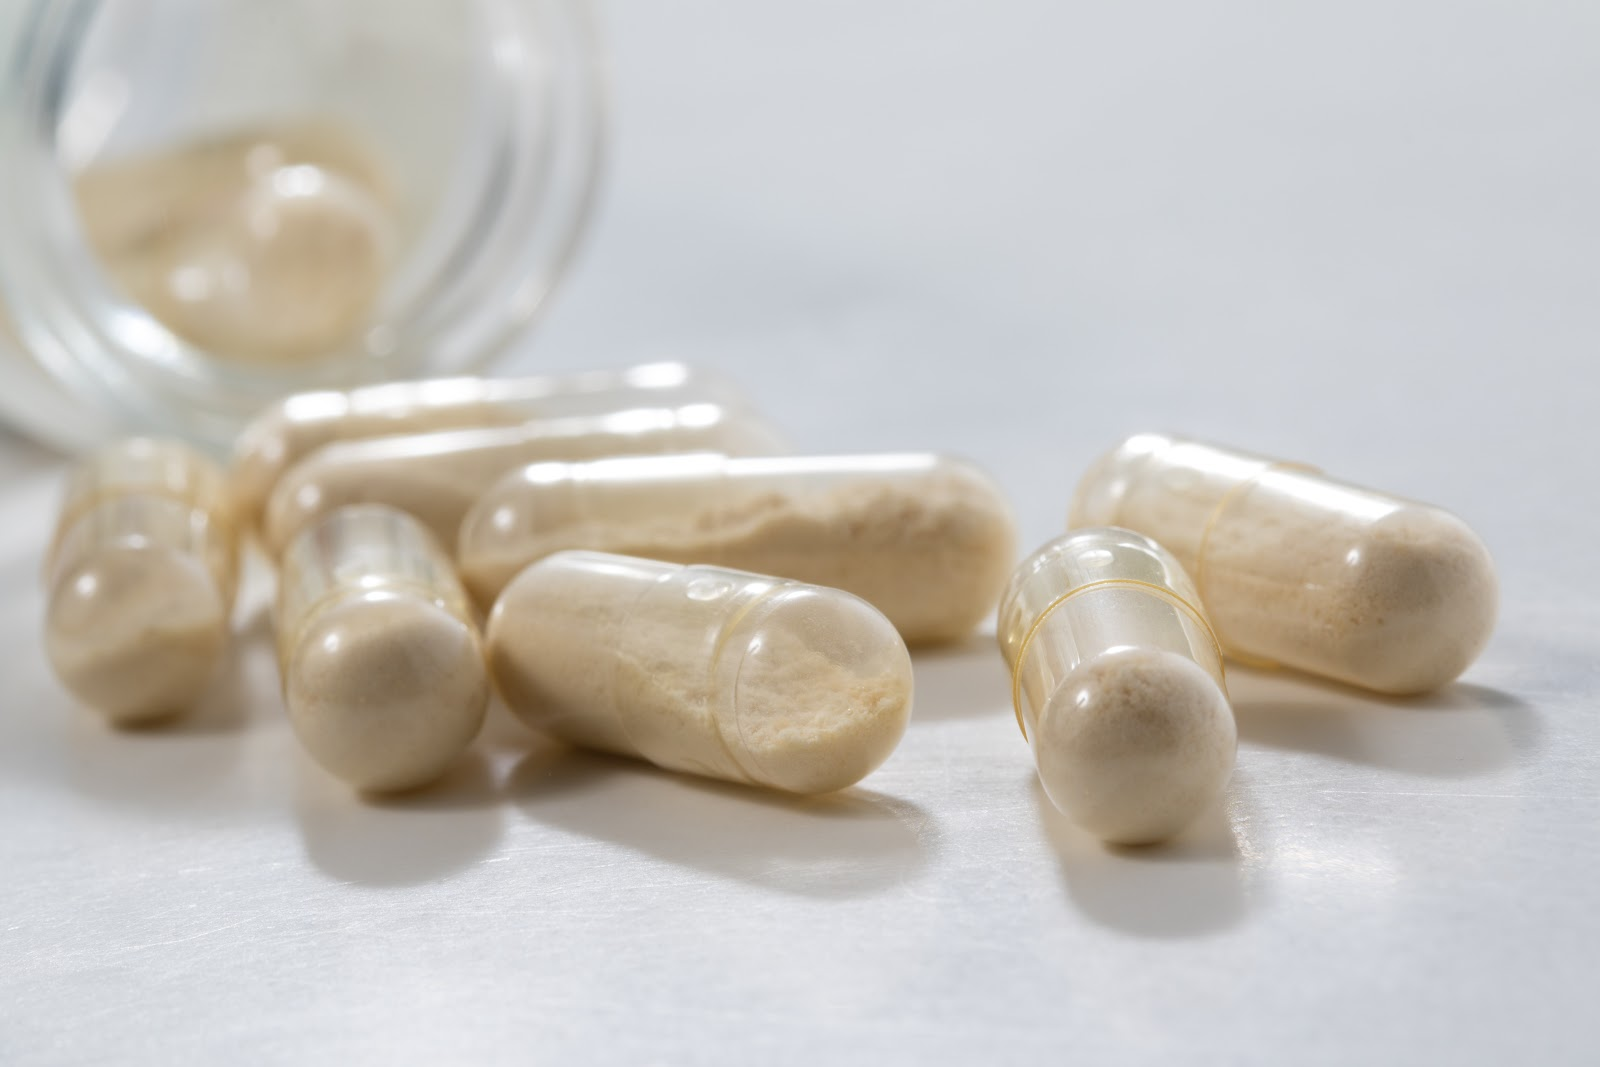 Probiotics capsules on a counter